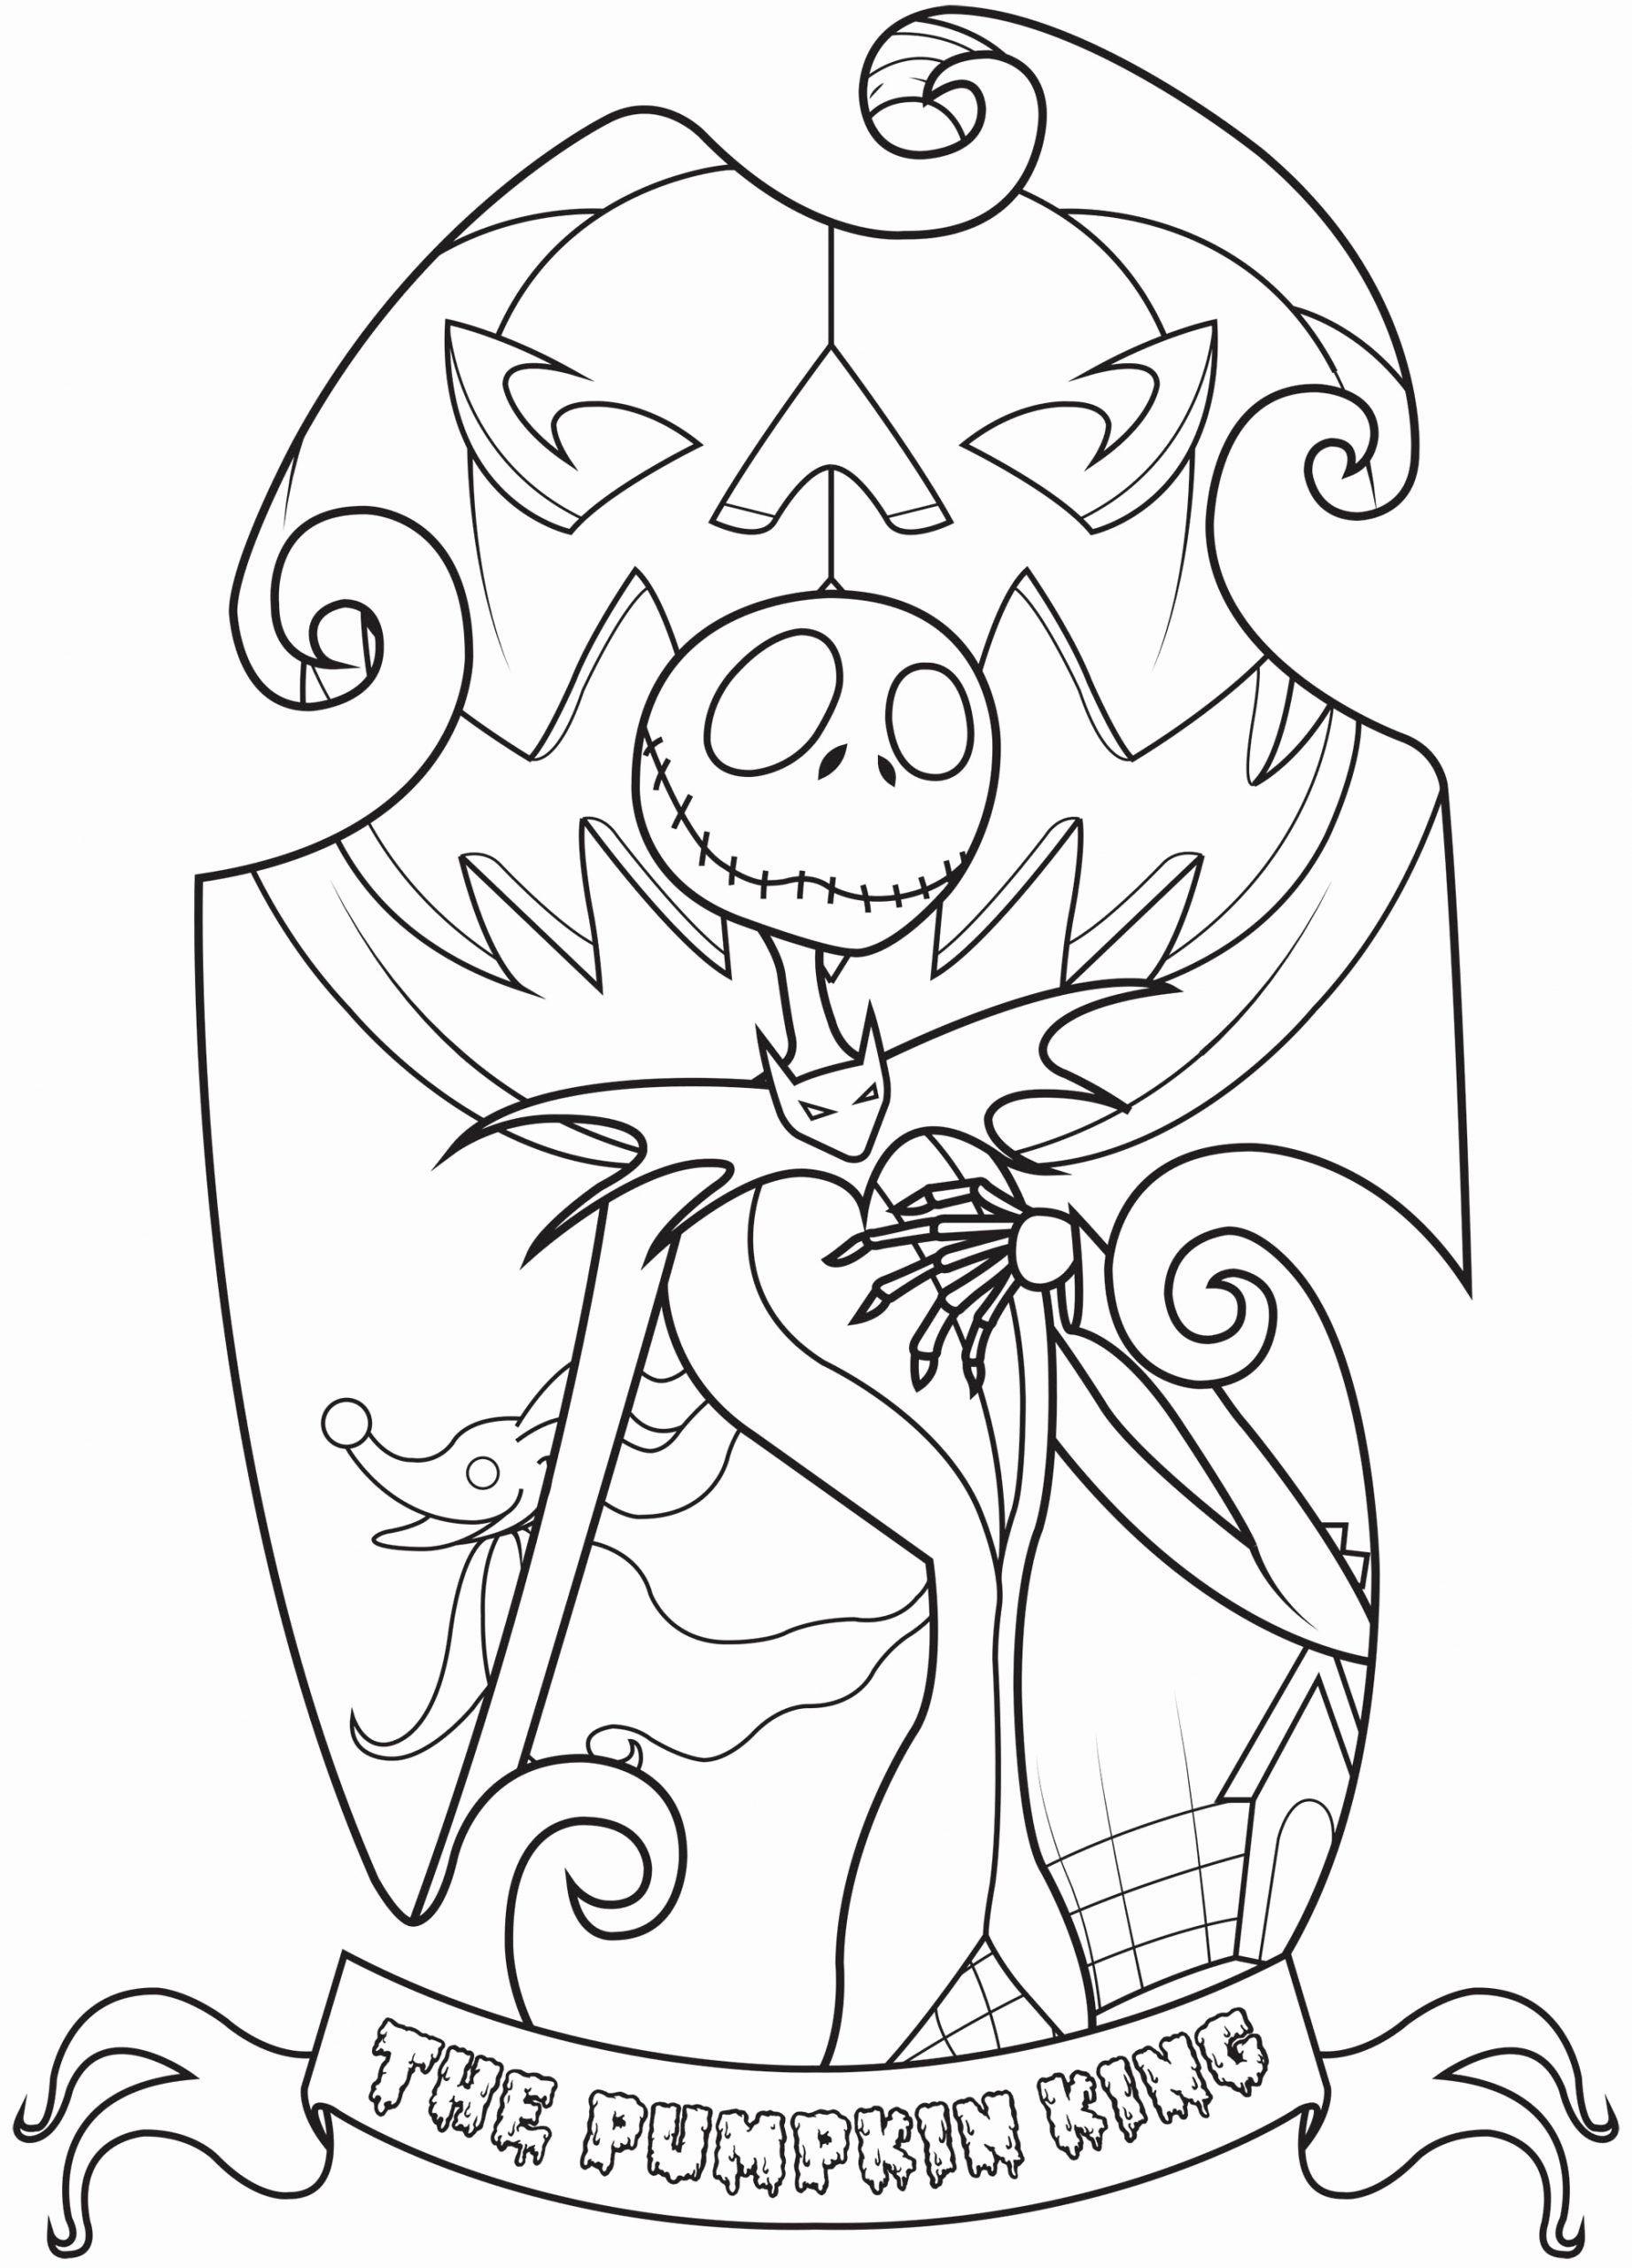 The Nightmare Before Christmas Coloring Pages Fresh Jack Skellington The Nightmare Before In 2020 Halloween Coloring Pages Christmas Coloring Pages Halloween Coloring